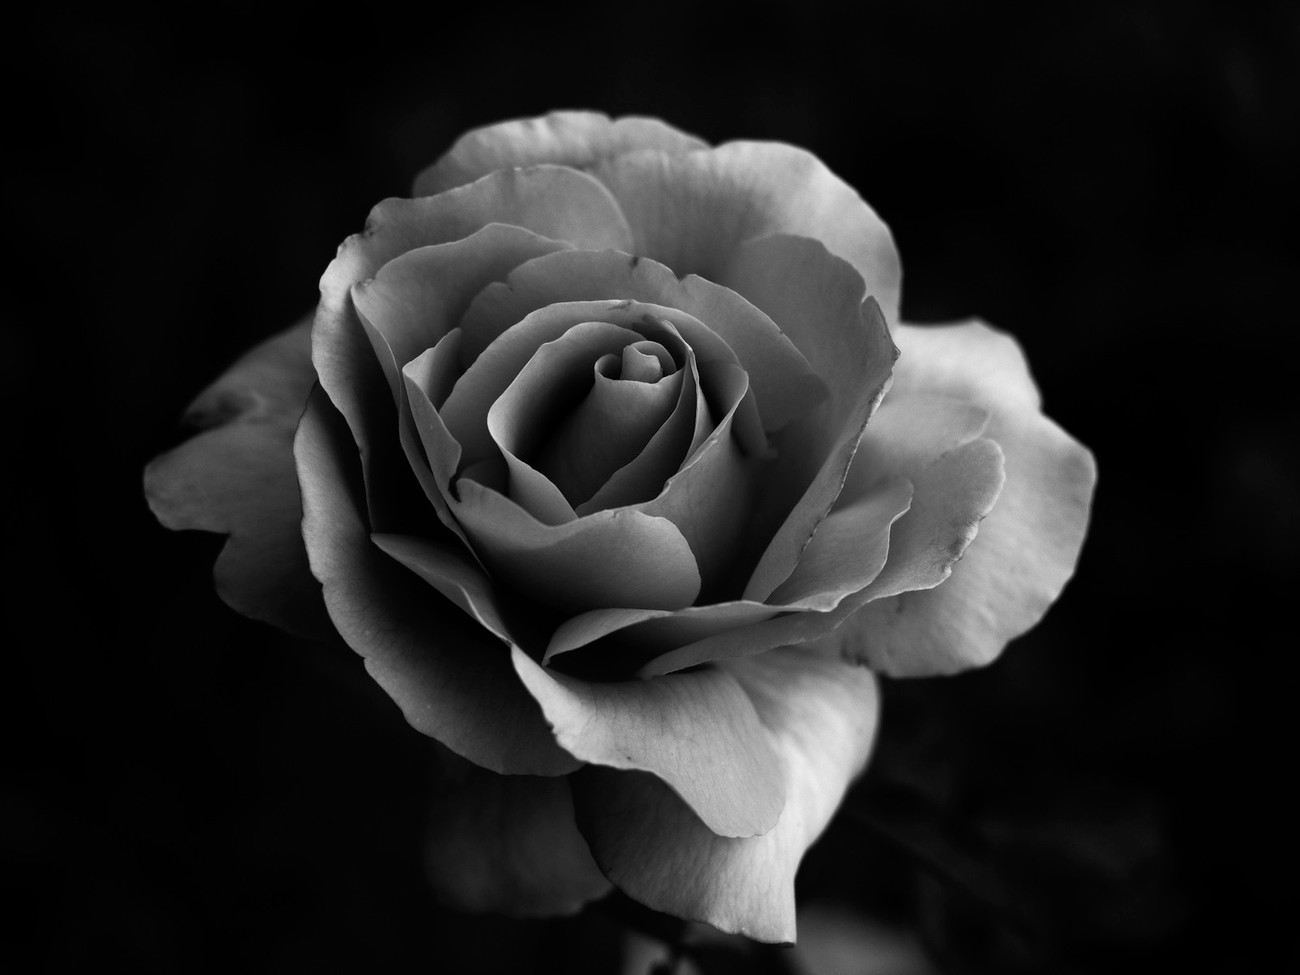 I fine this rose one that is very good to be done as a black and white photo